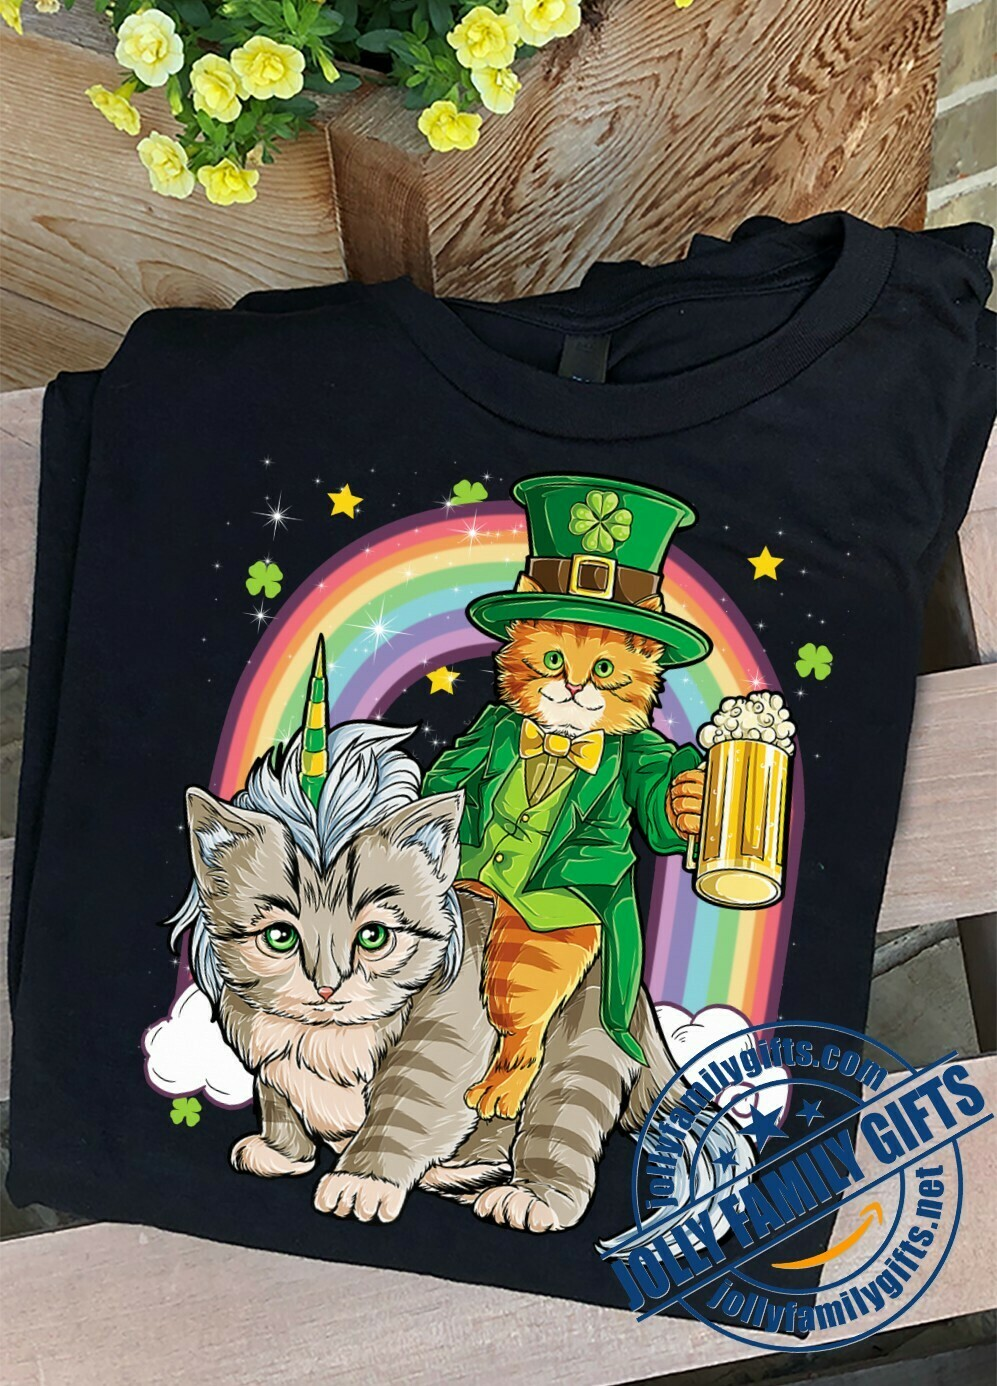 Cat Leprechaun drinking Beer Riding Caticorn Unicorn St Patricks Day Rainbow Gift for Cat Lovers Dad Mom Unisex T-Shirt Hoodie Sweatshirt Sweater Plus Size for Ladies Women Men Kids Youth Gifts Tee